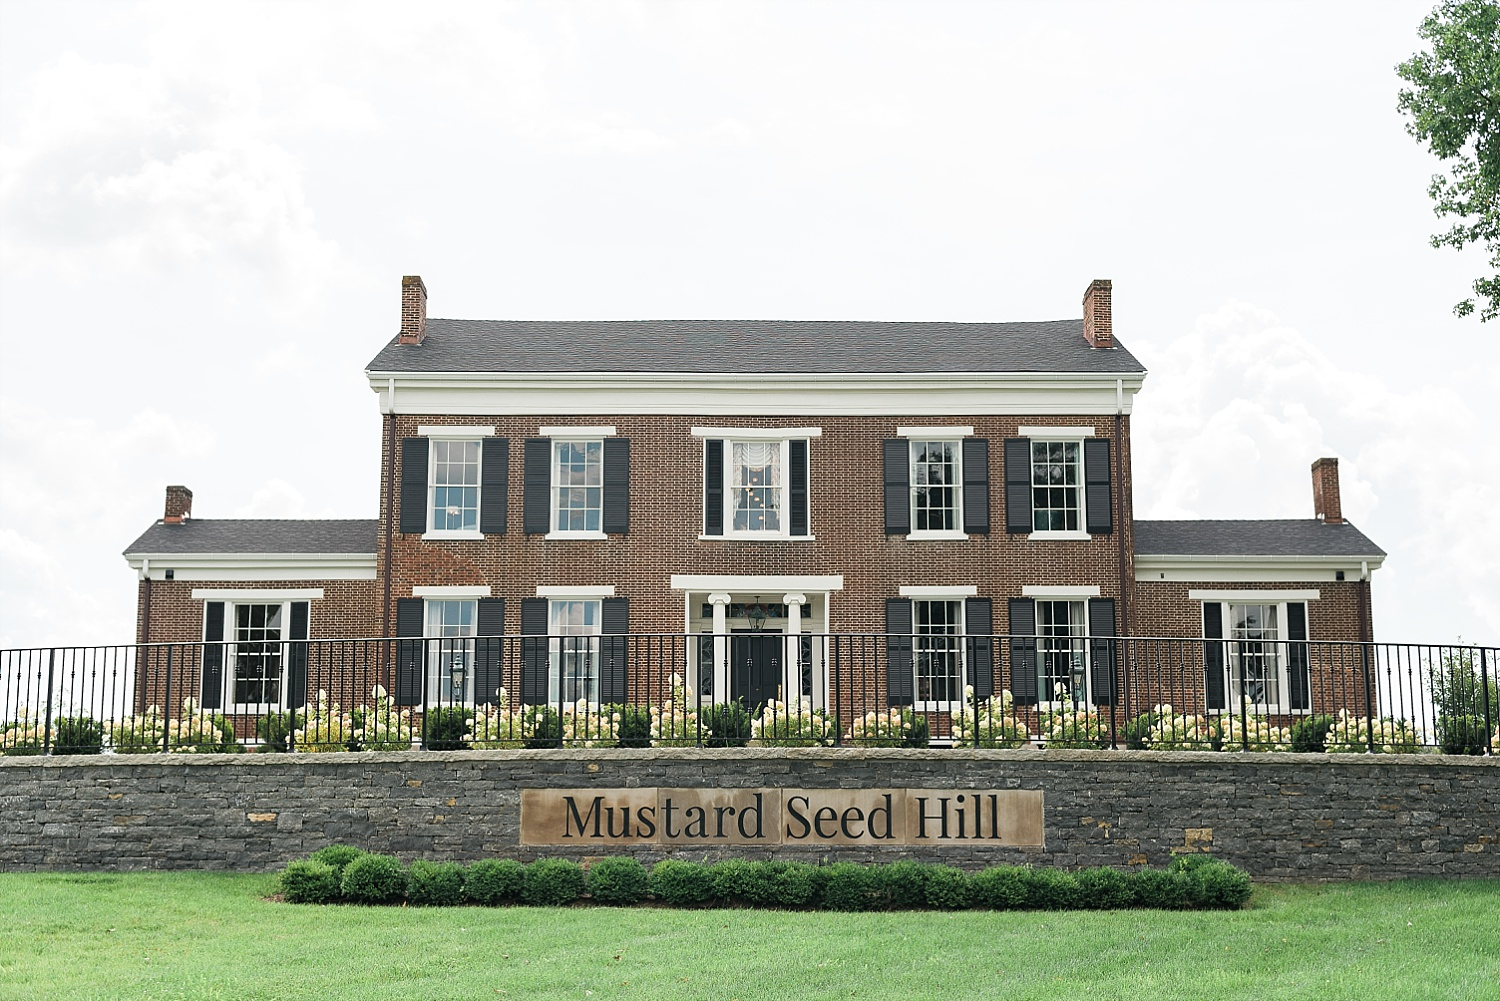 One of Kentucky's newest wedding venues, Mustard Seed Hill!